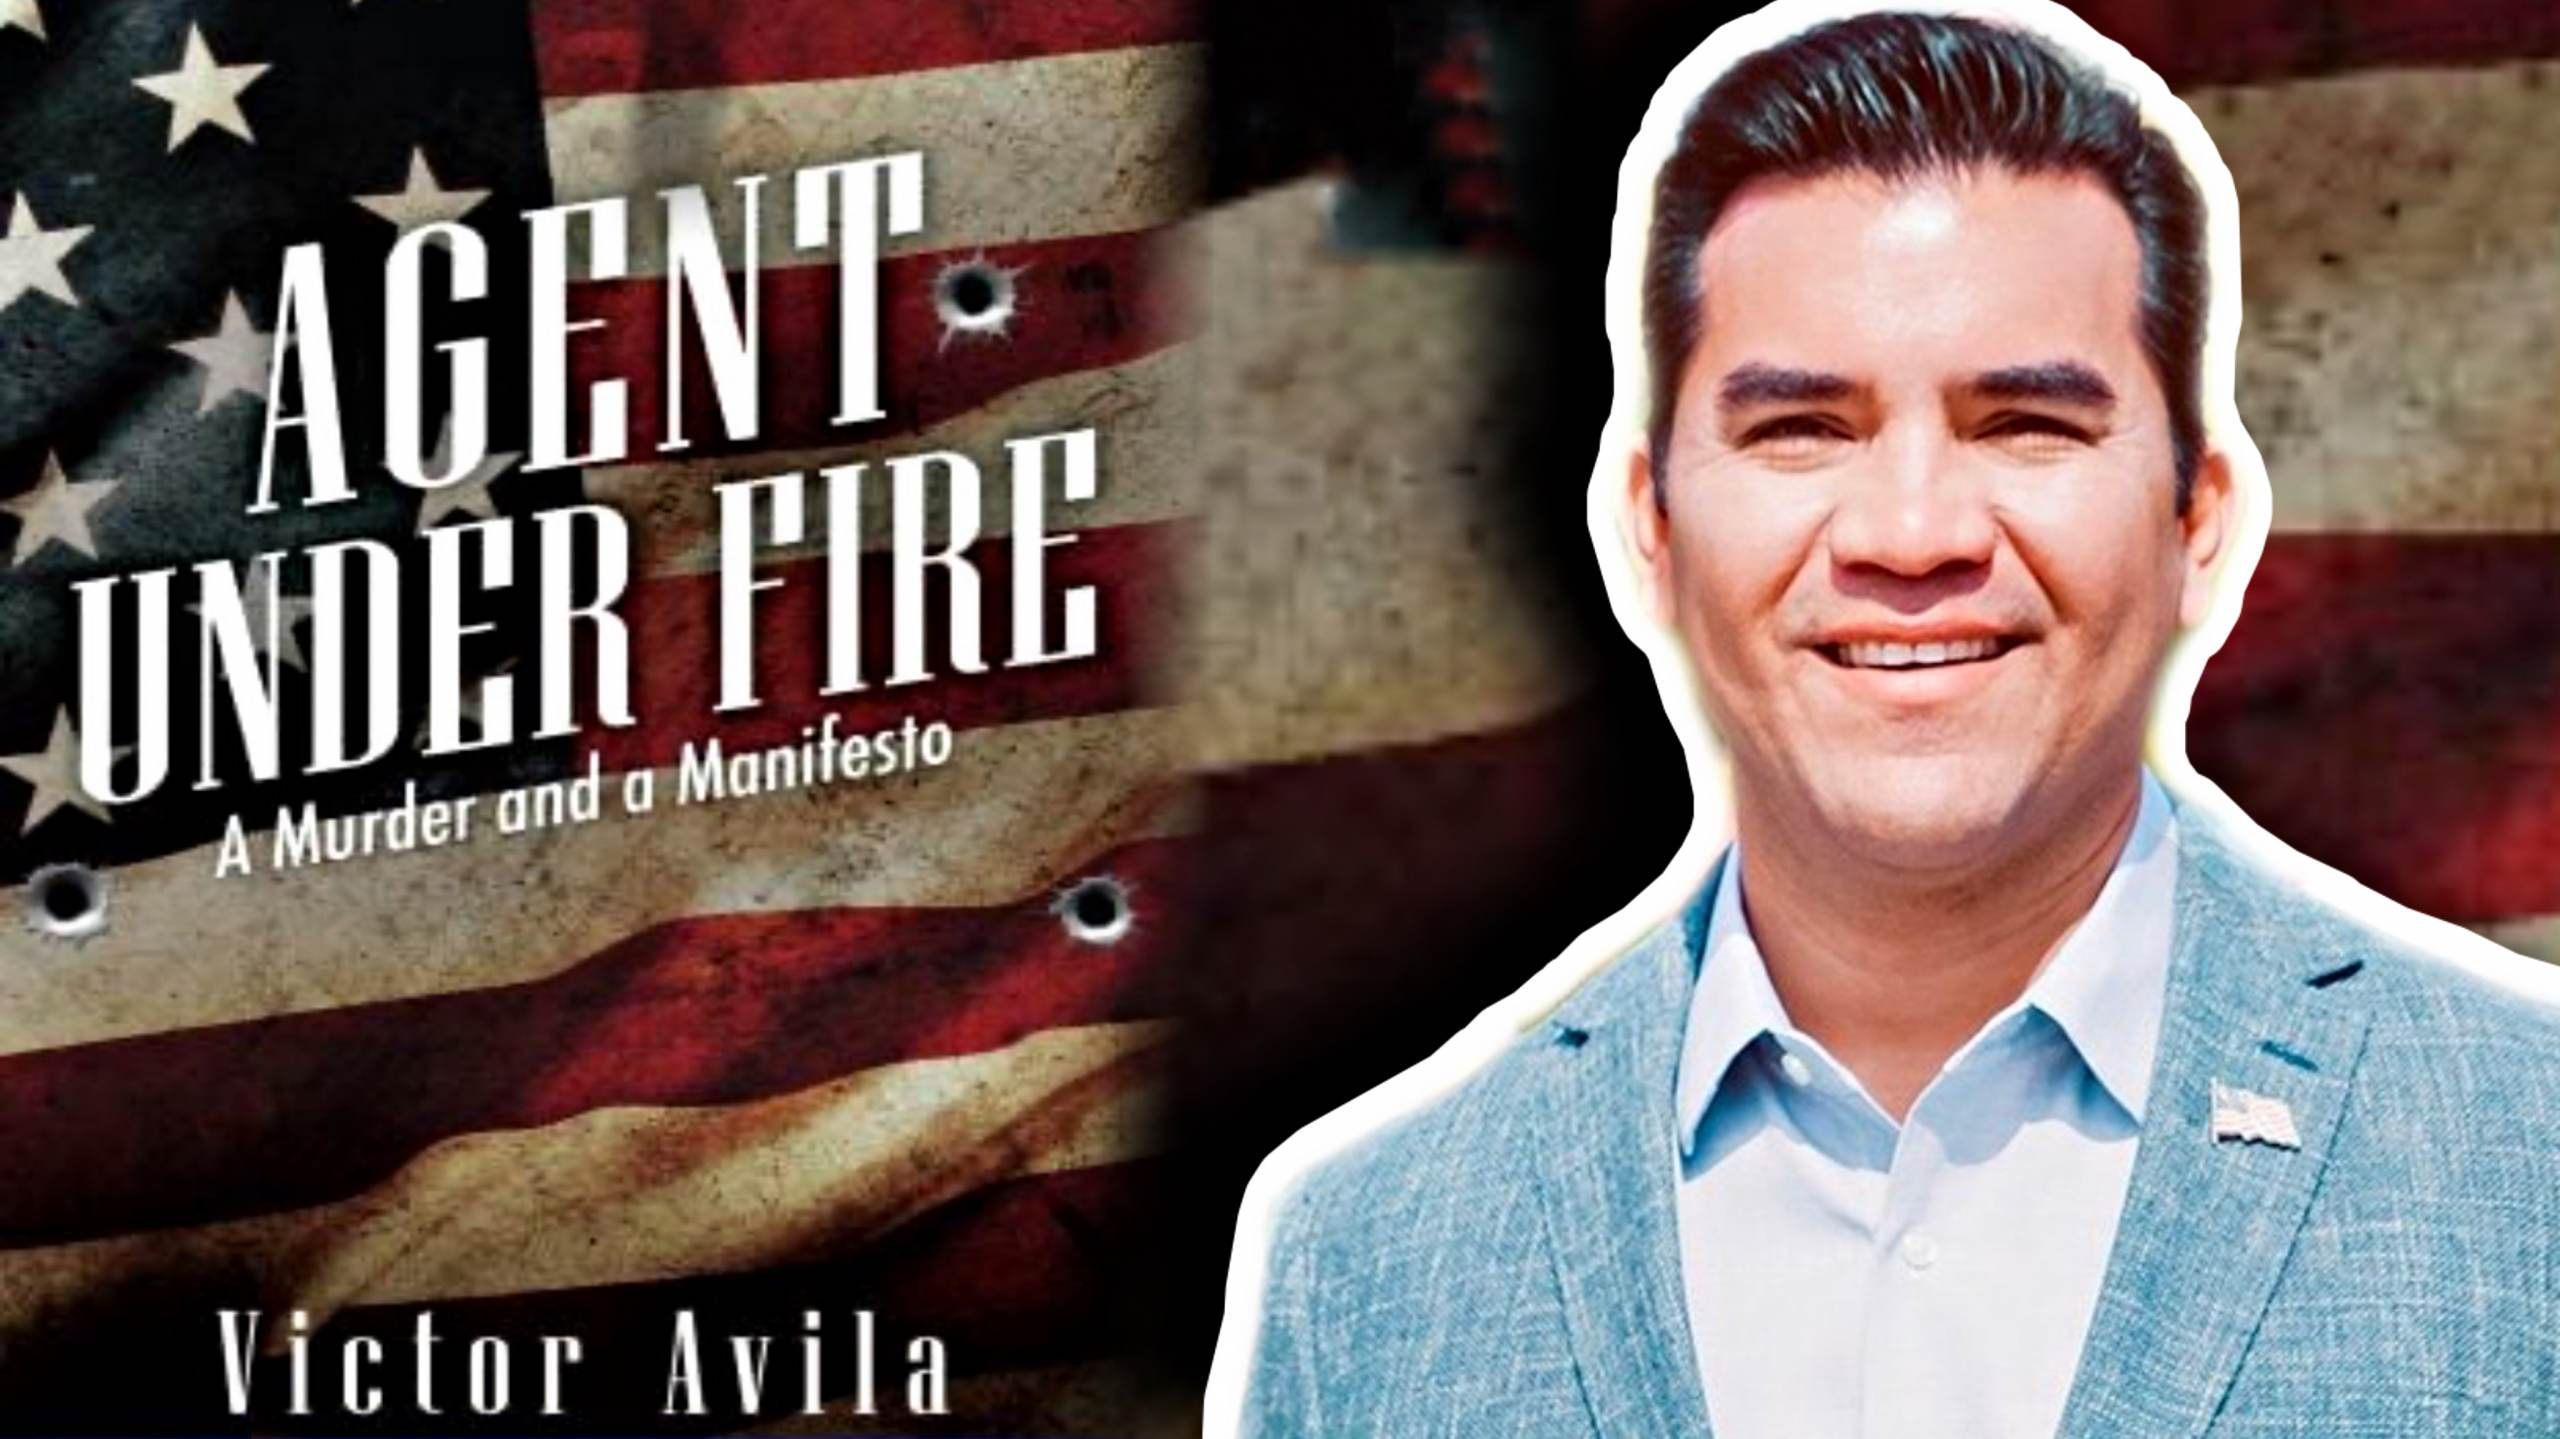 """""""Agent Under Fire"""" - Author and American Hero Victor Avila Speaks Out About the Current Crisis on the Southern Border (VIDEO)"""